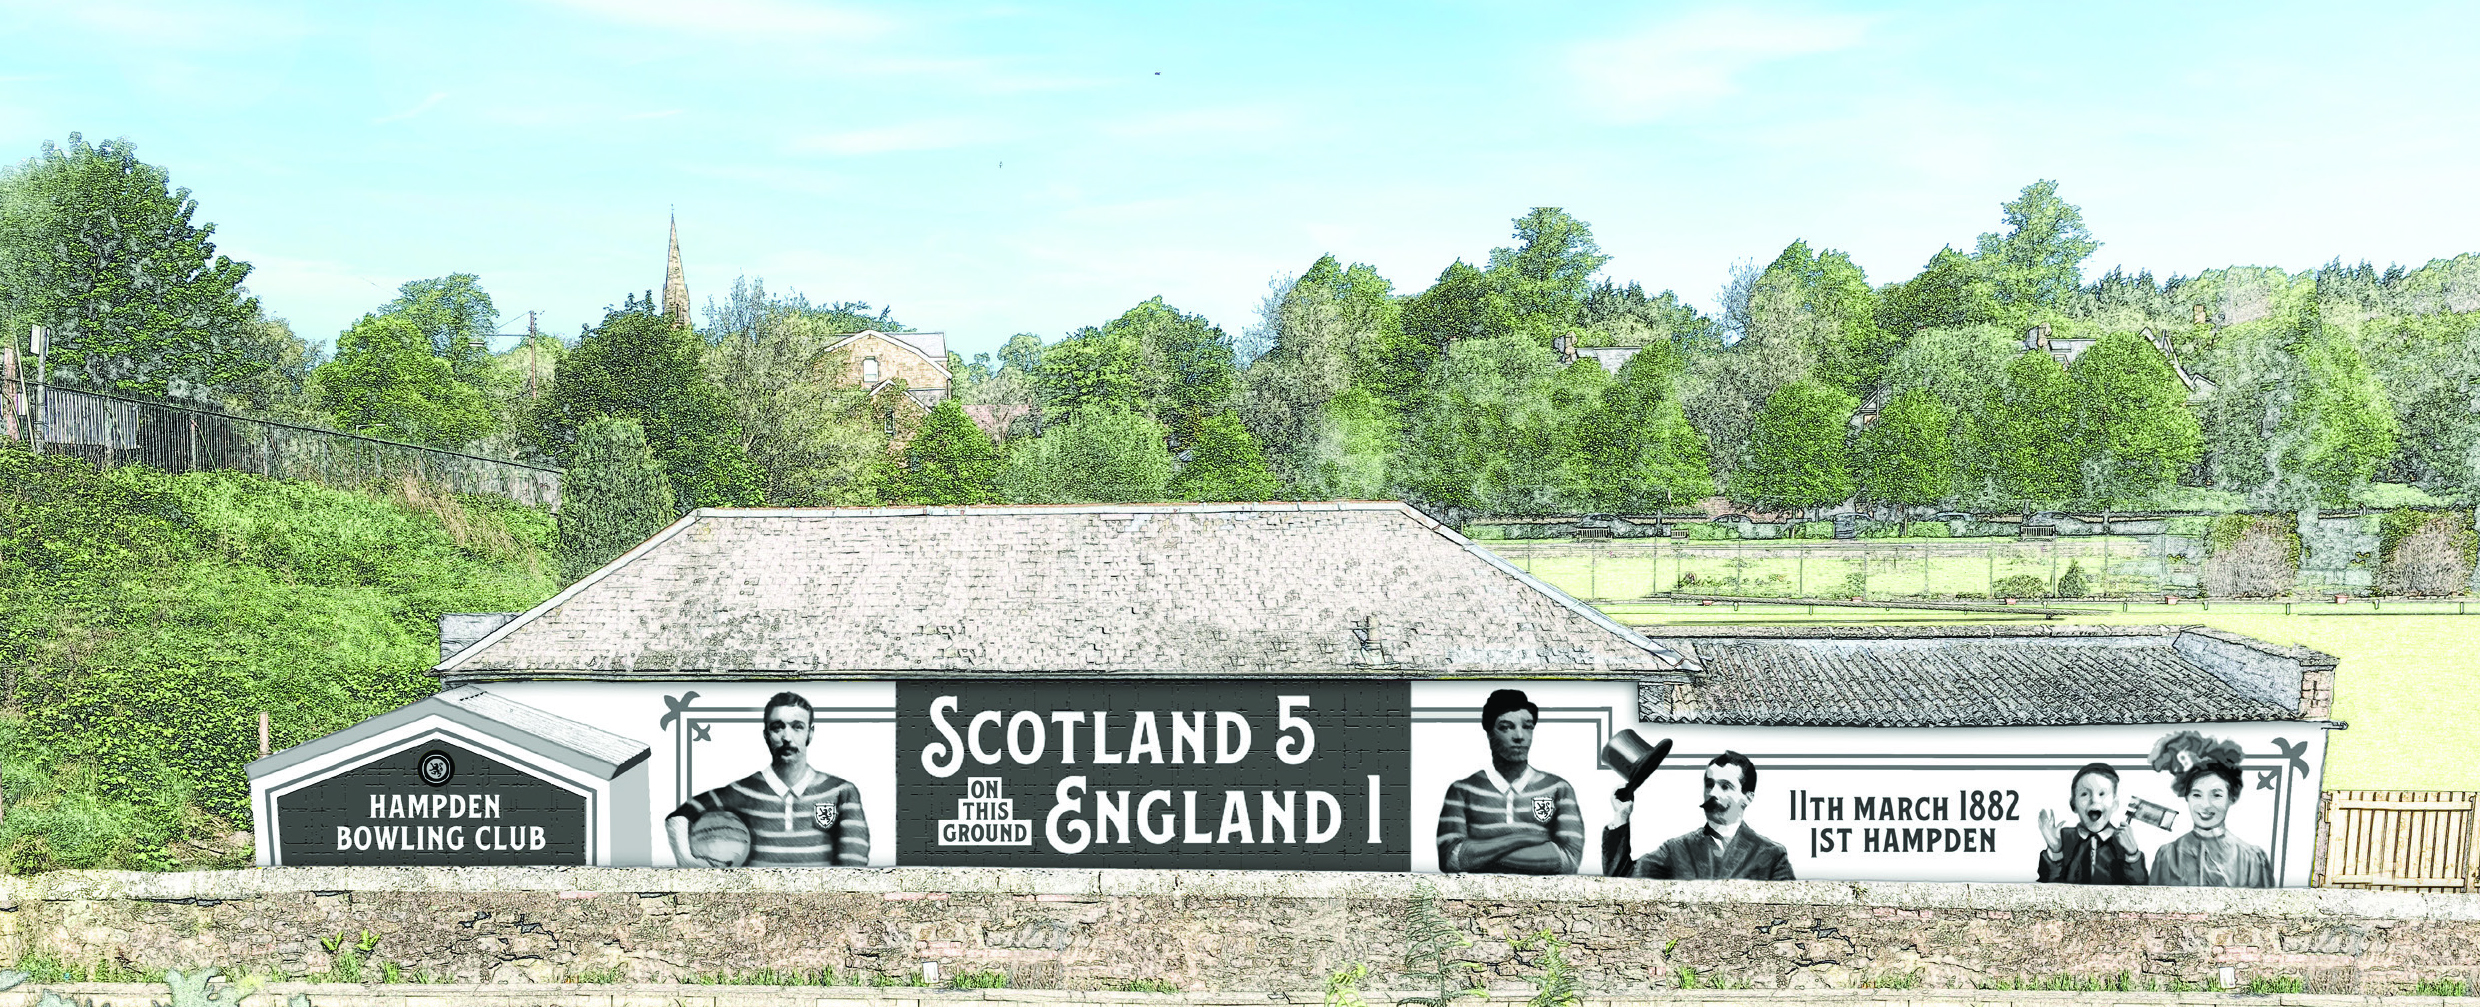 1st Hampden Mural Mock Up